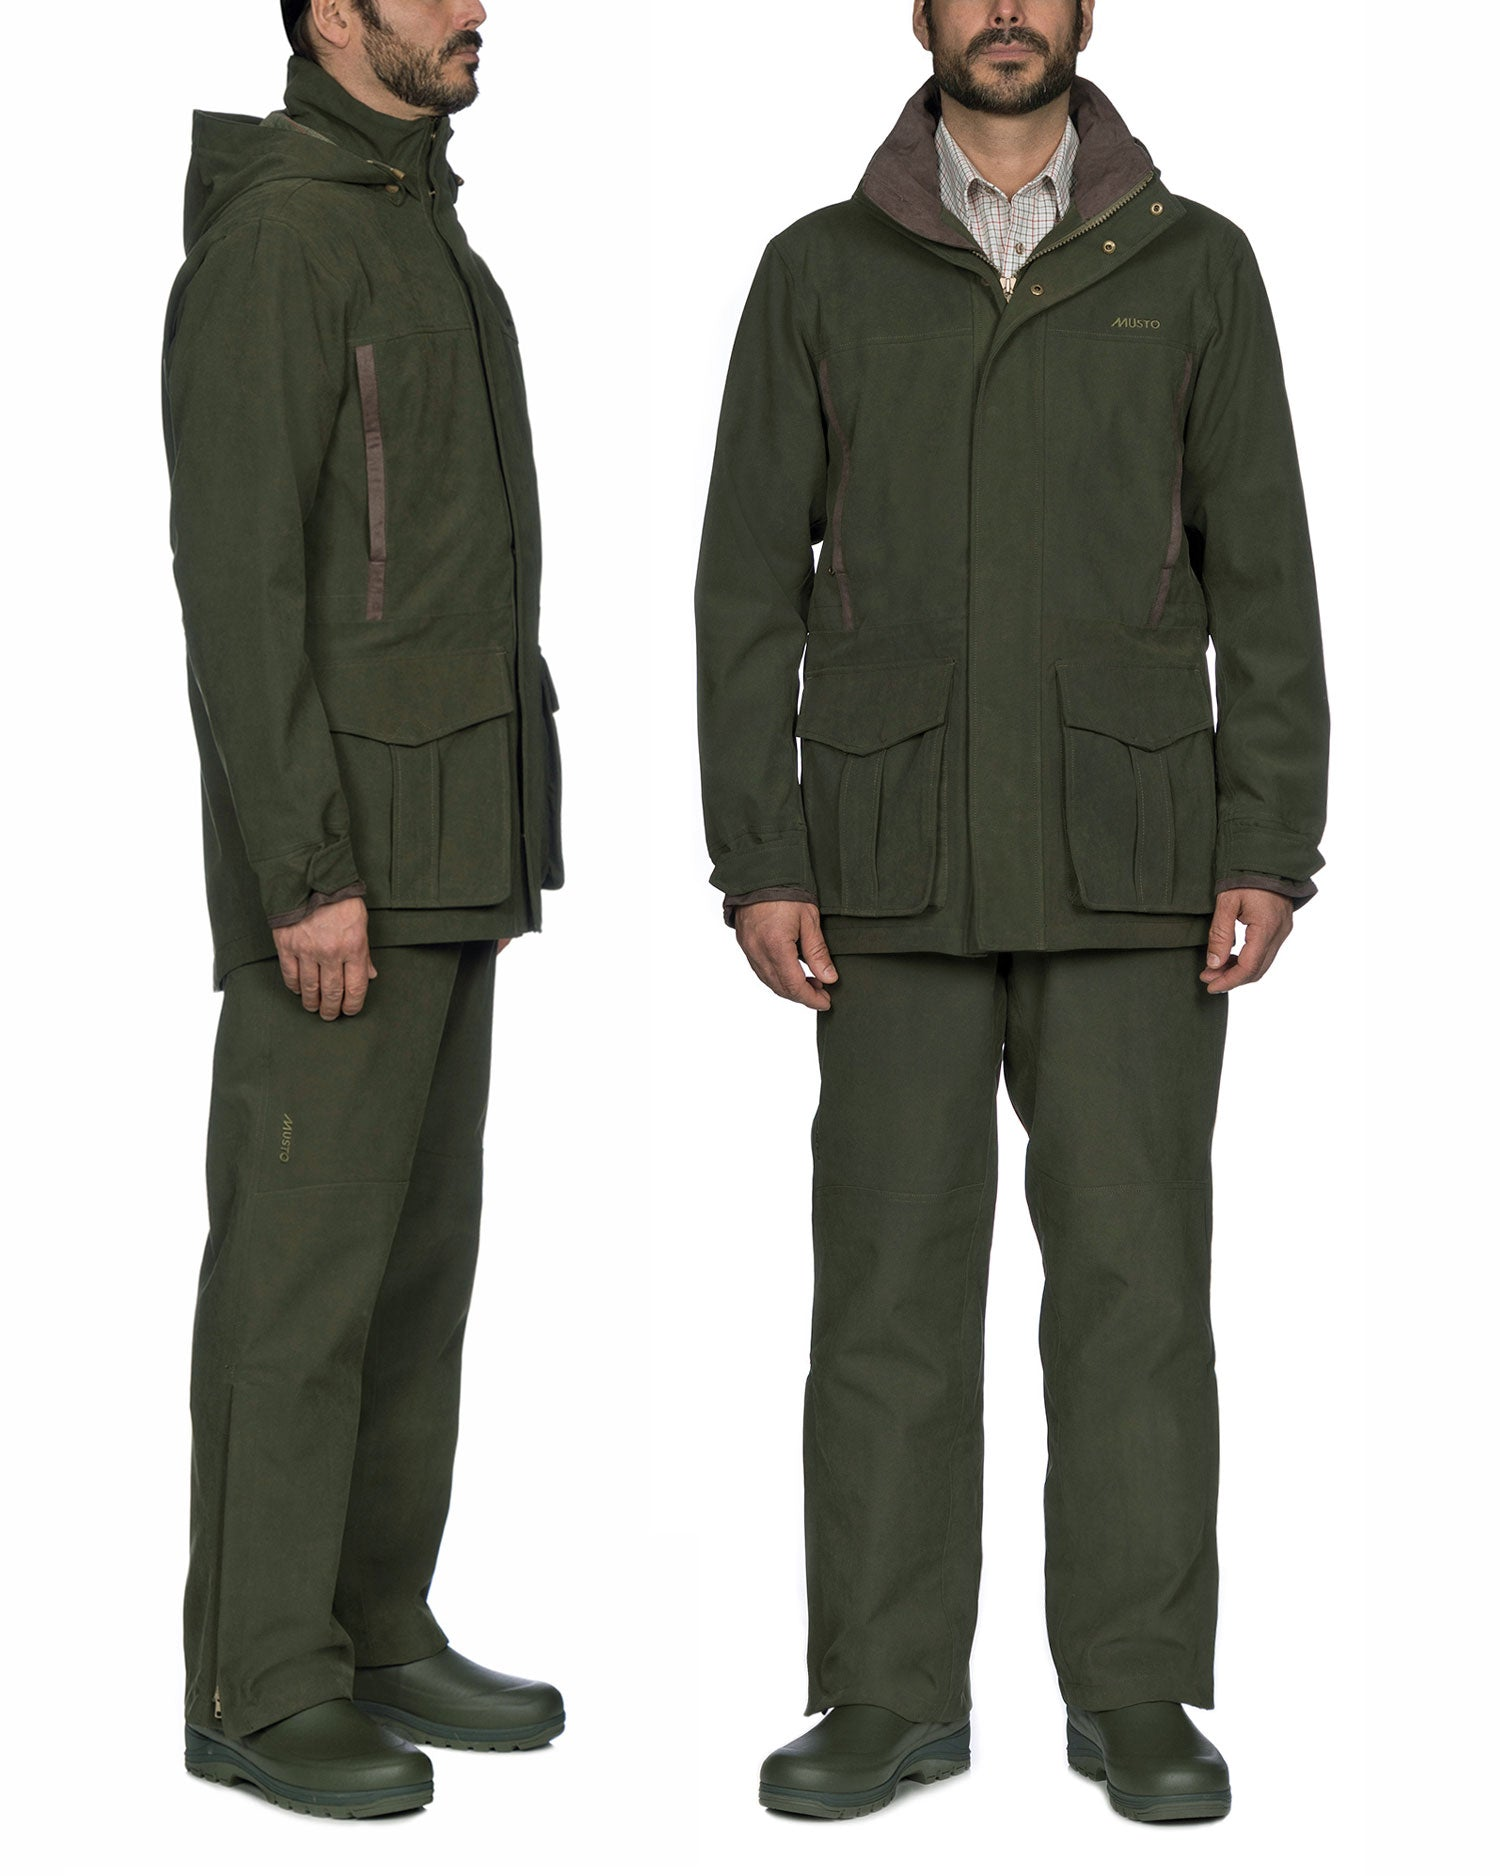 Keepers Westmoor Waterproof Shooting Jacket by Musto